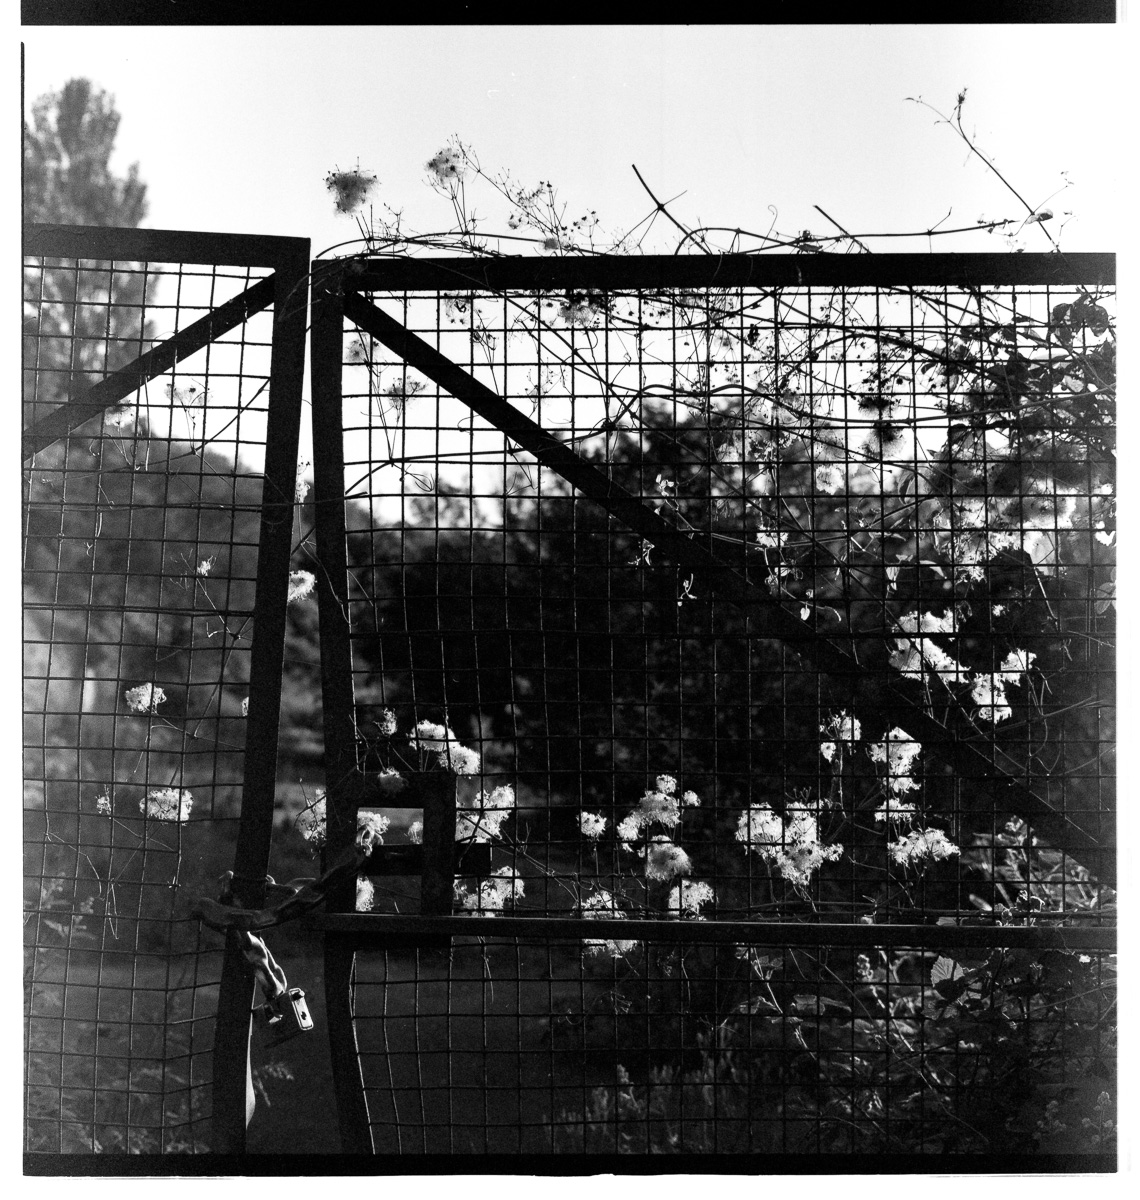 Weed seed heads garland a locked mesh gate to the Saxonvale site.